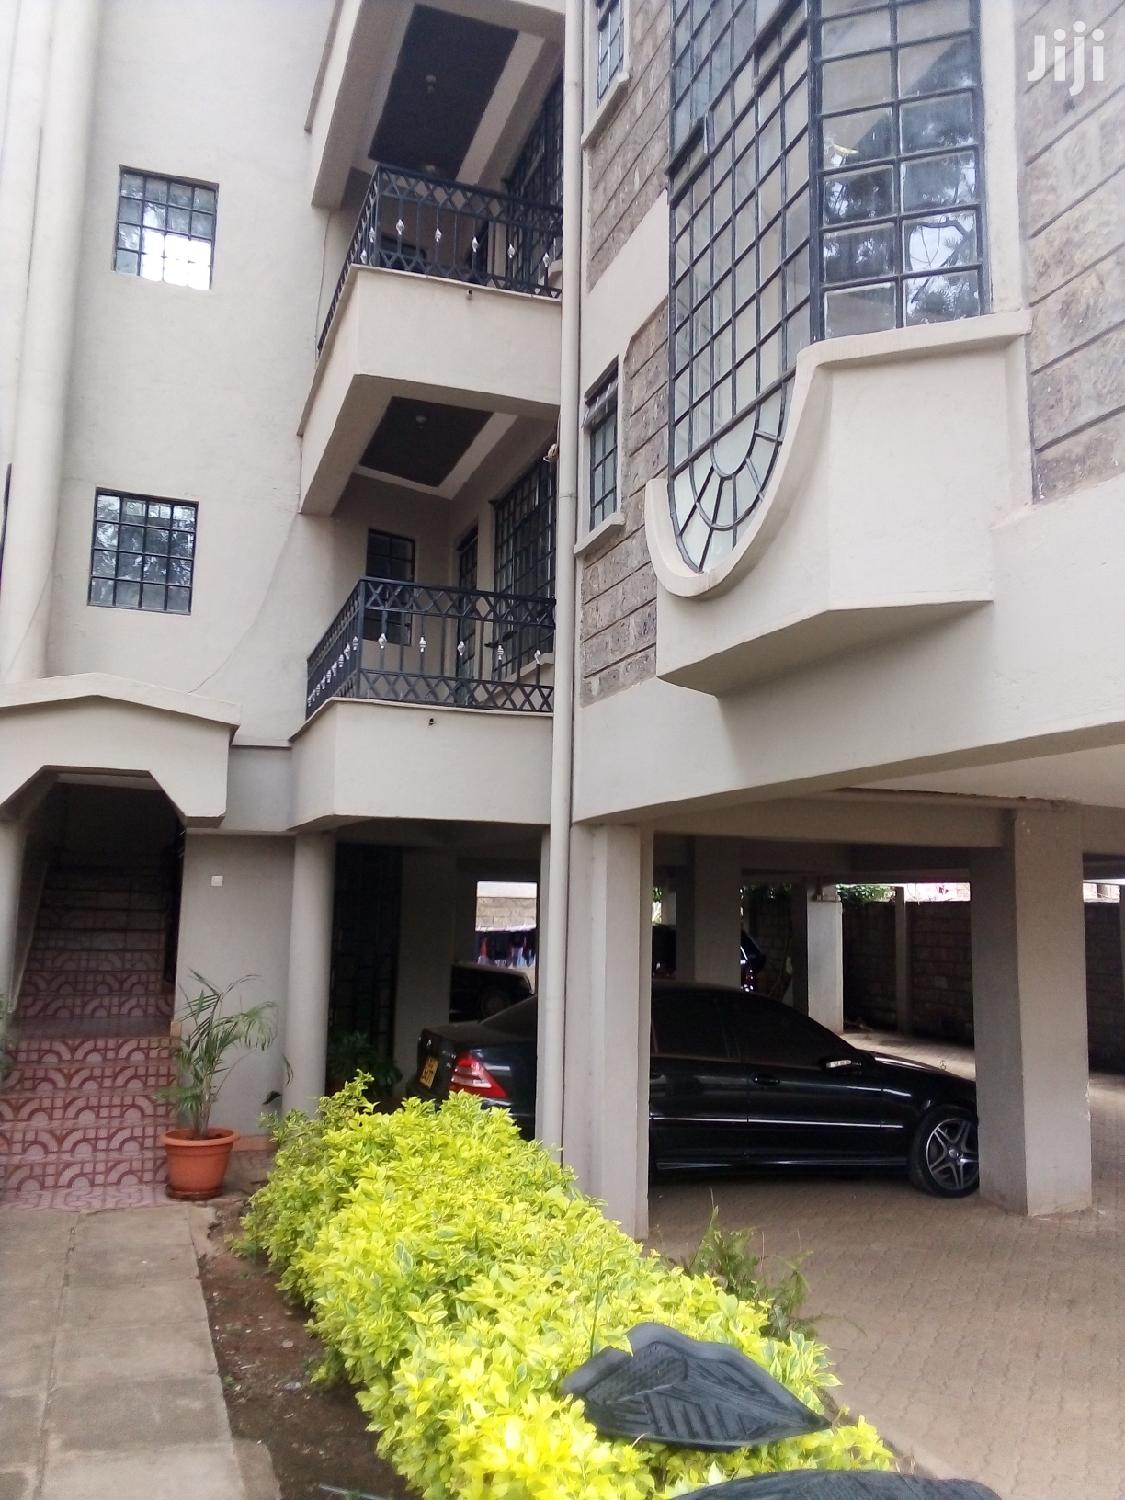 Executive Two Bedroom Apartment In Kilimani Master En Suite To Let